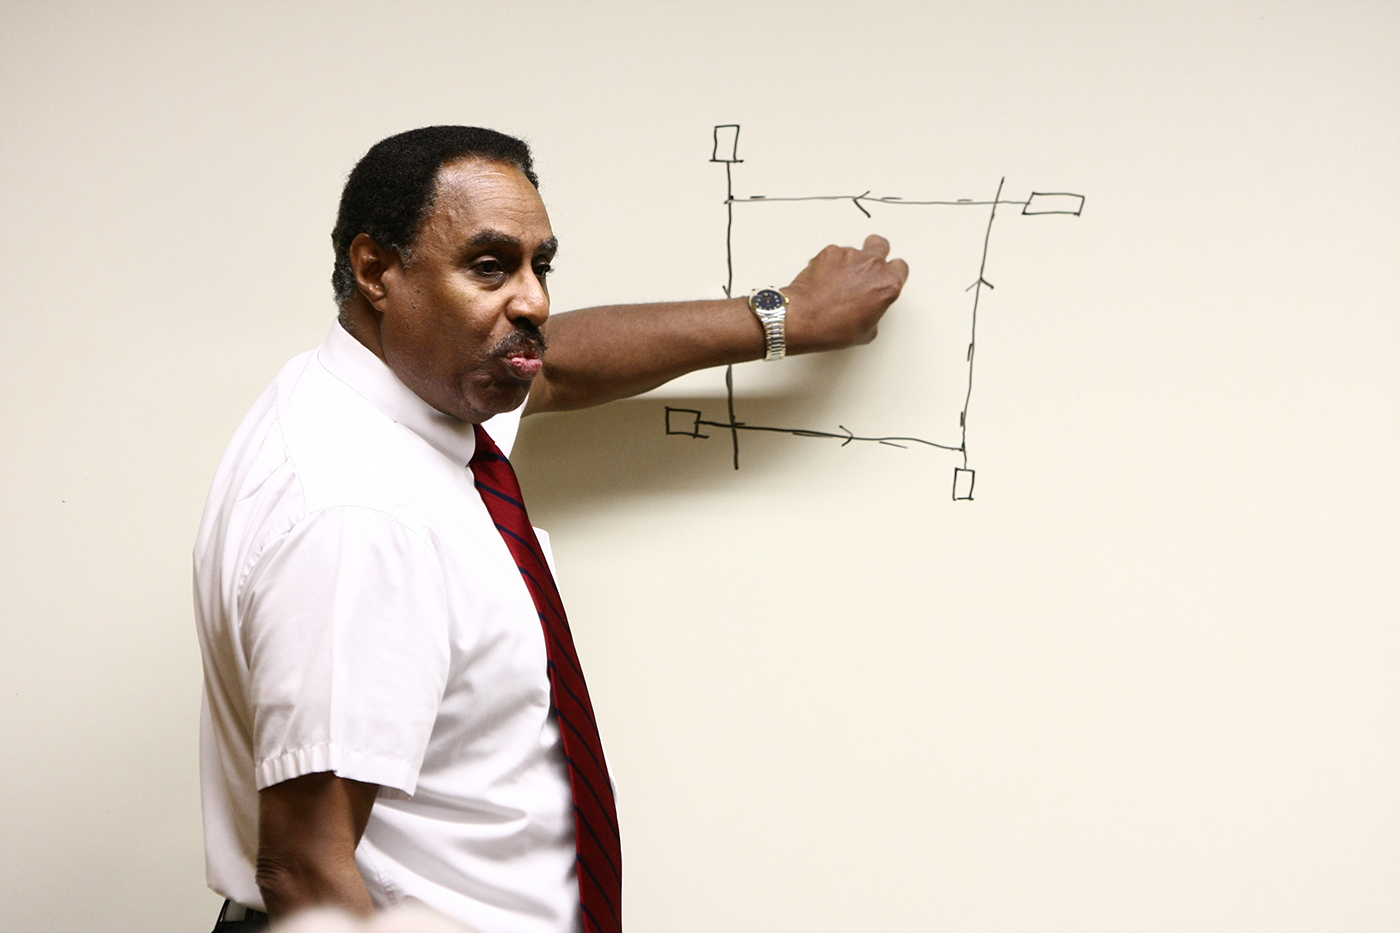 UConn physics research professor Ronald Mallett based his work on the theory which claims time is affected by gravity. This theory dictates that as gravity increases in strength, time slows down. (File Photo/The Daily Campus)